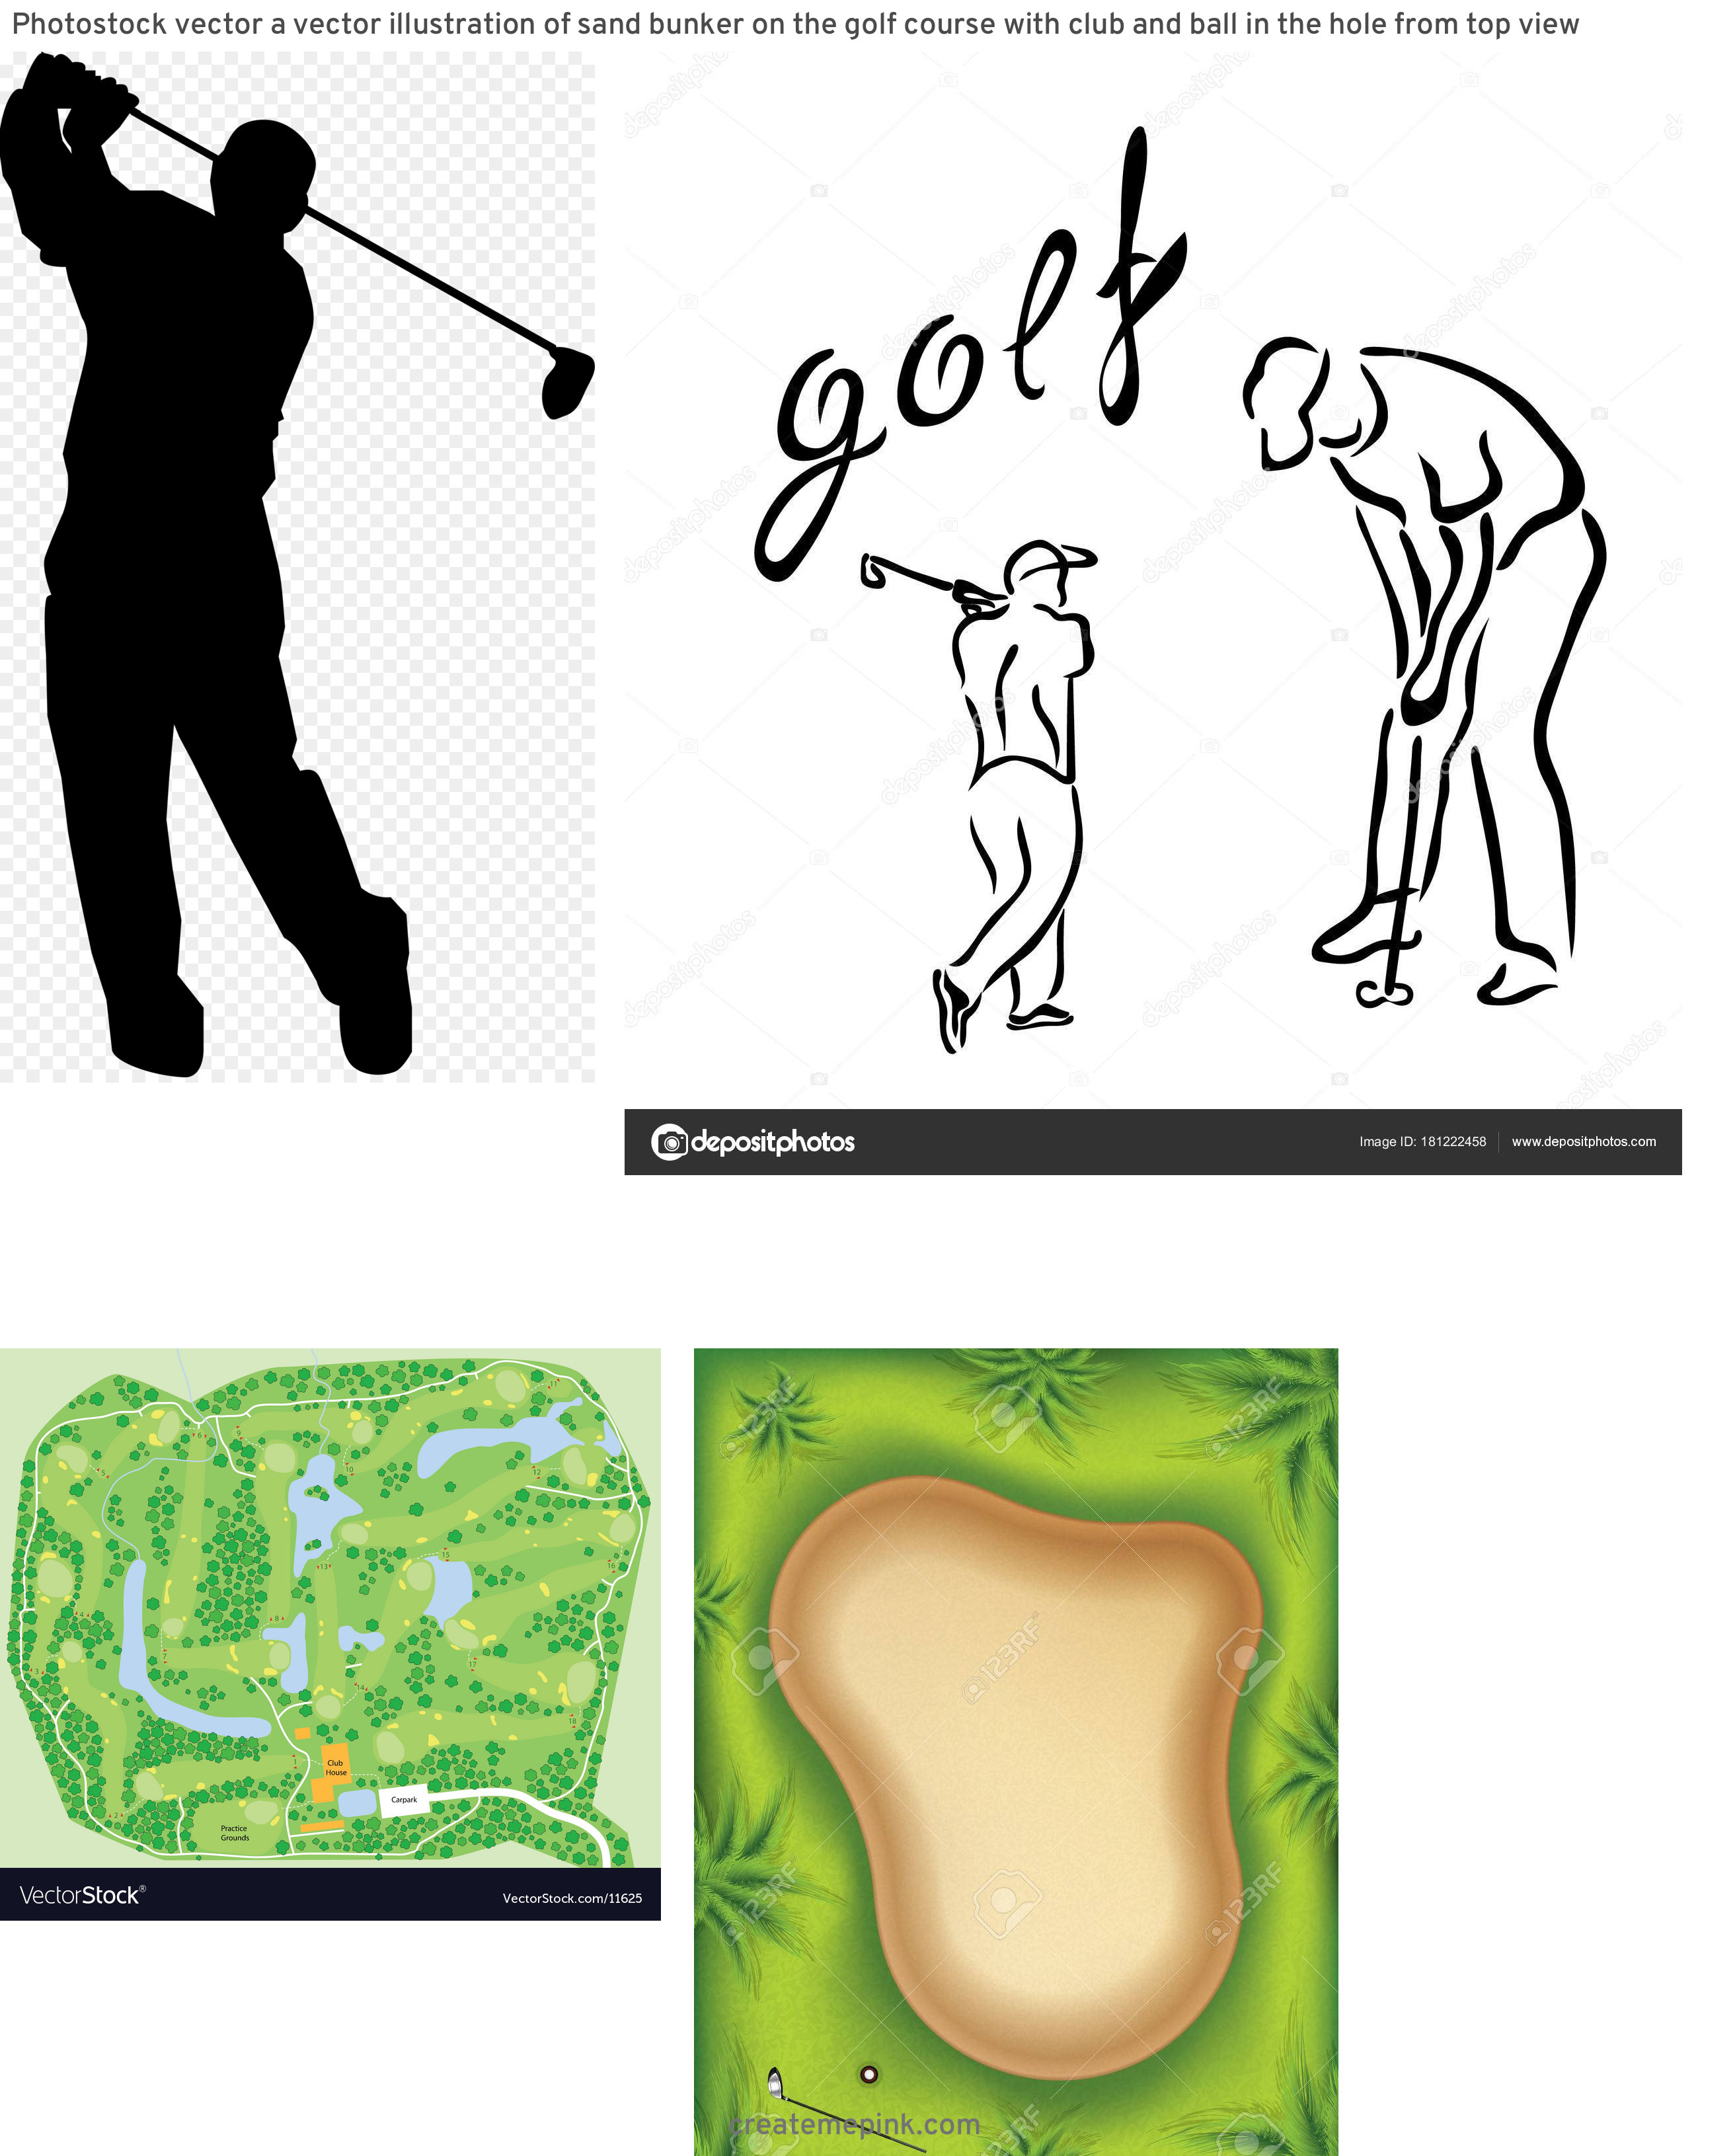 Golf Course Vector Art: Photostock Vector A Vector Illustration Of Sand Bunker On The Golf Course With Club And Ball In The Hole From Top View